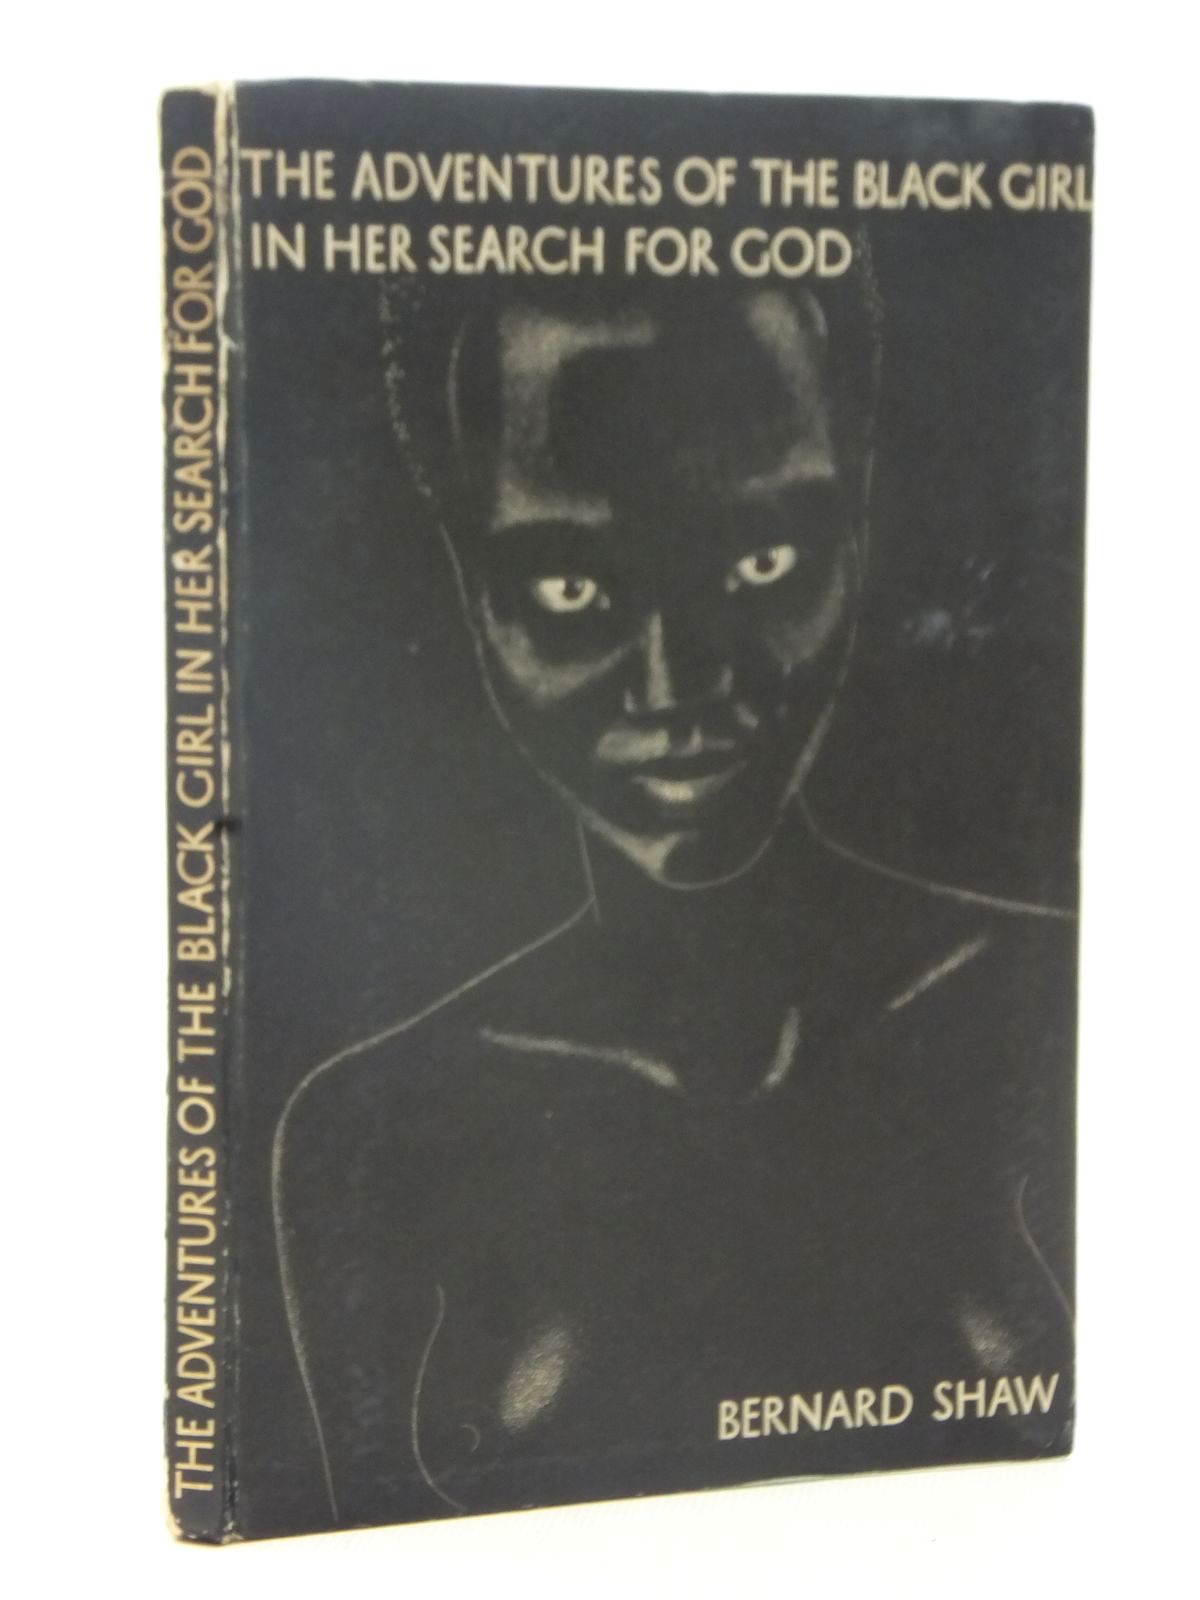 Photo of THE ADVENTURES OF THE BLACK GIRL IN HER SEARCH FOR GOD written by Shaw, George Bernard illustrated by Farleigh, John published by Constable and Company Ltd. (STOCK CODE: 2124085)  for sale by Stella & Rose's Books